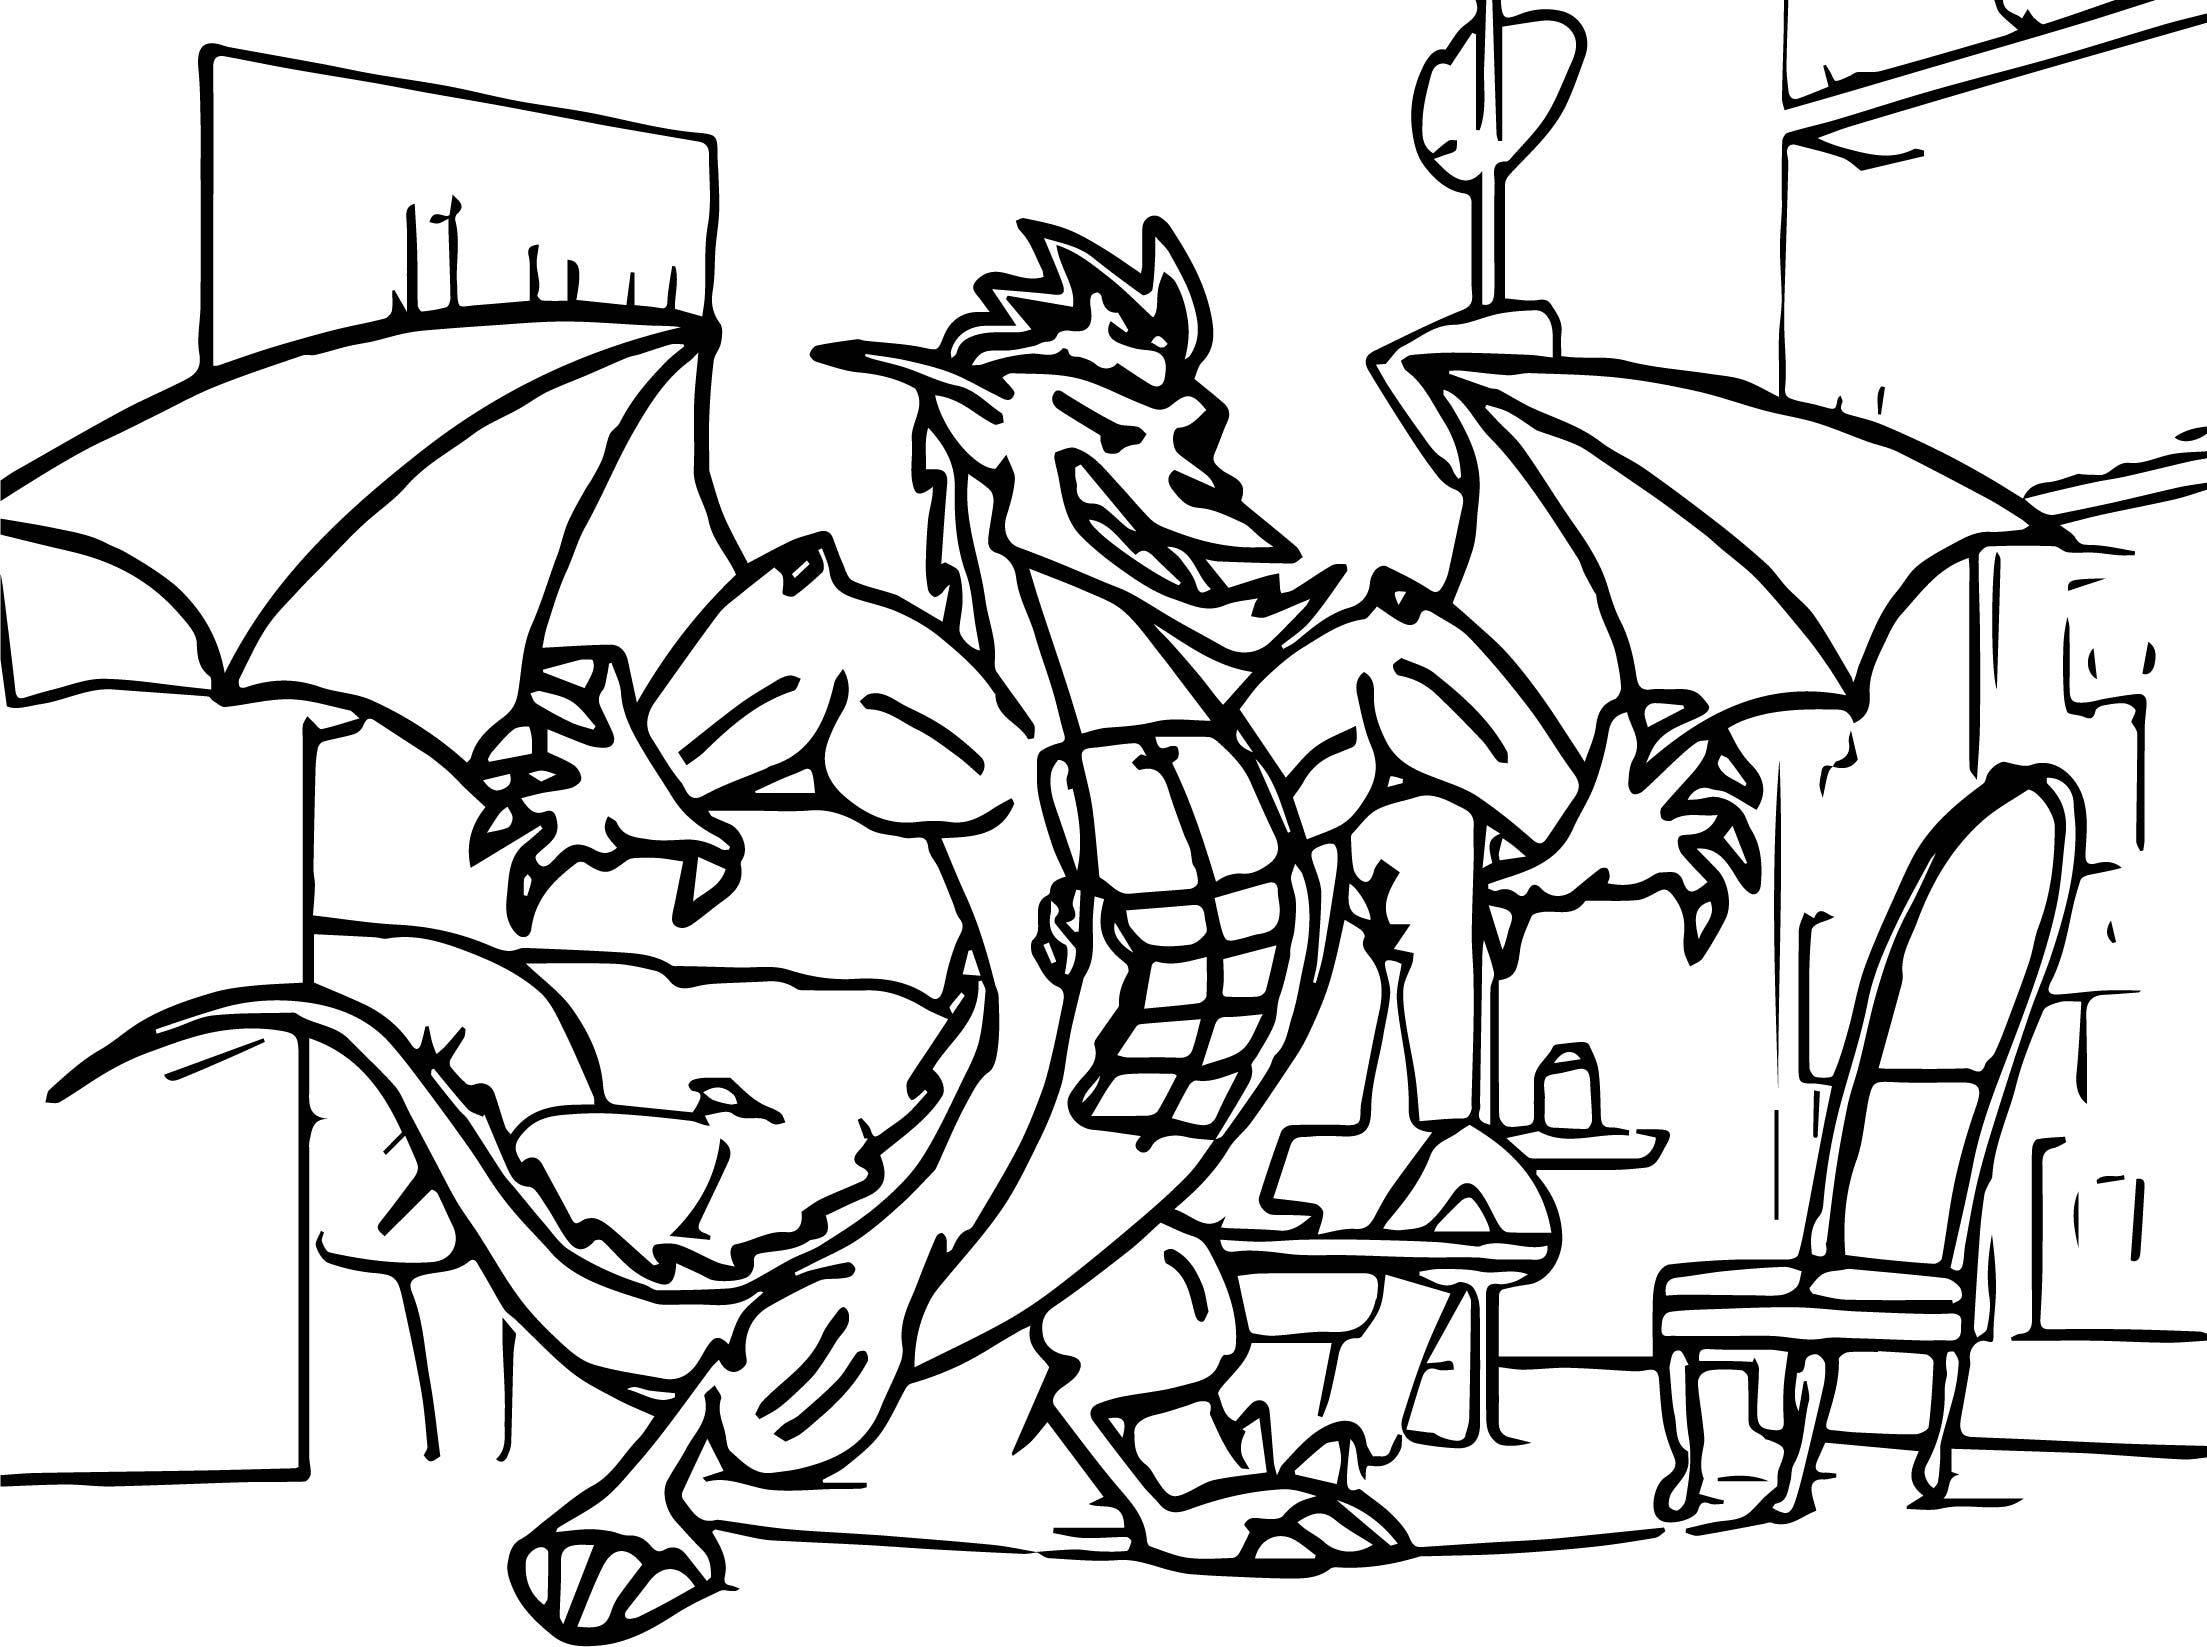 americon dragon coloring pages - photo#44